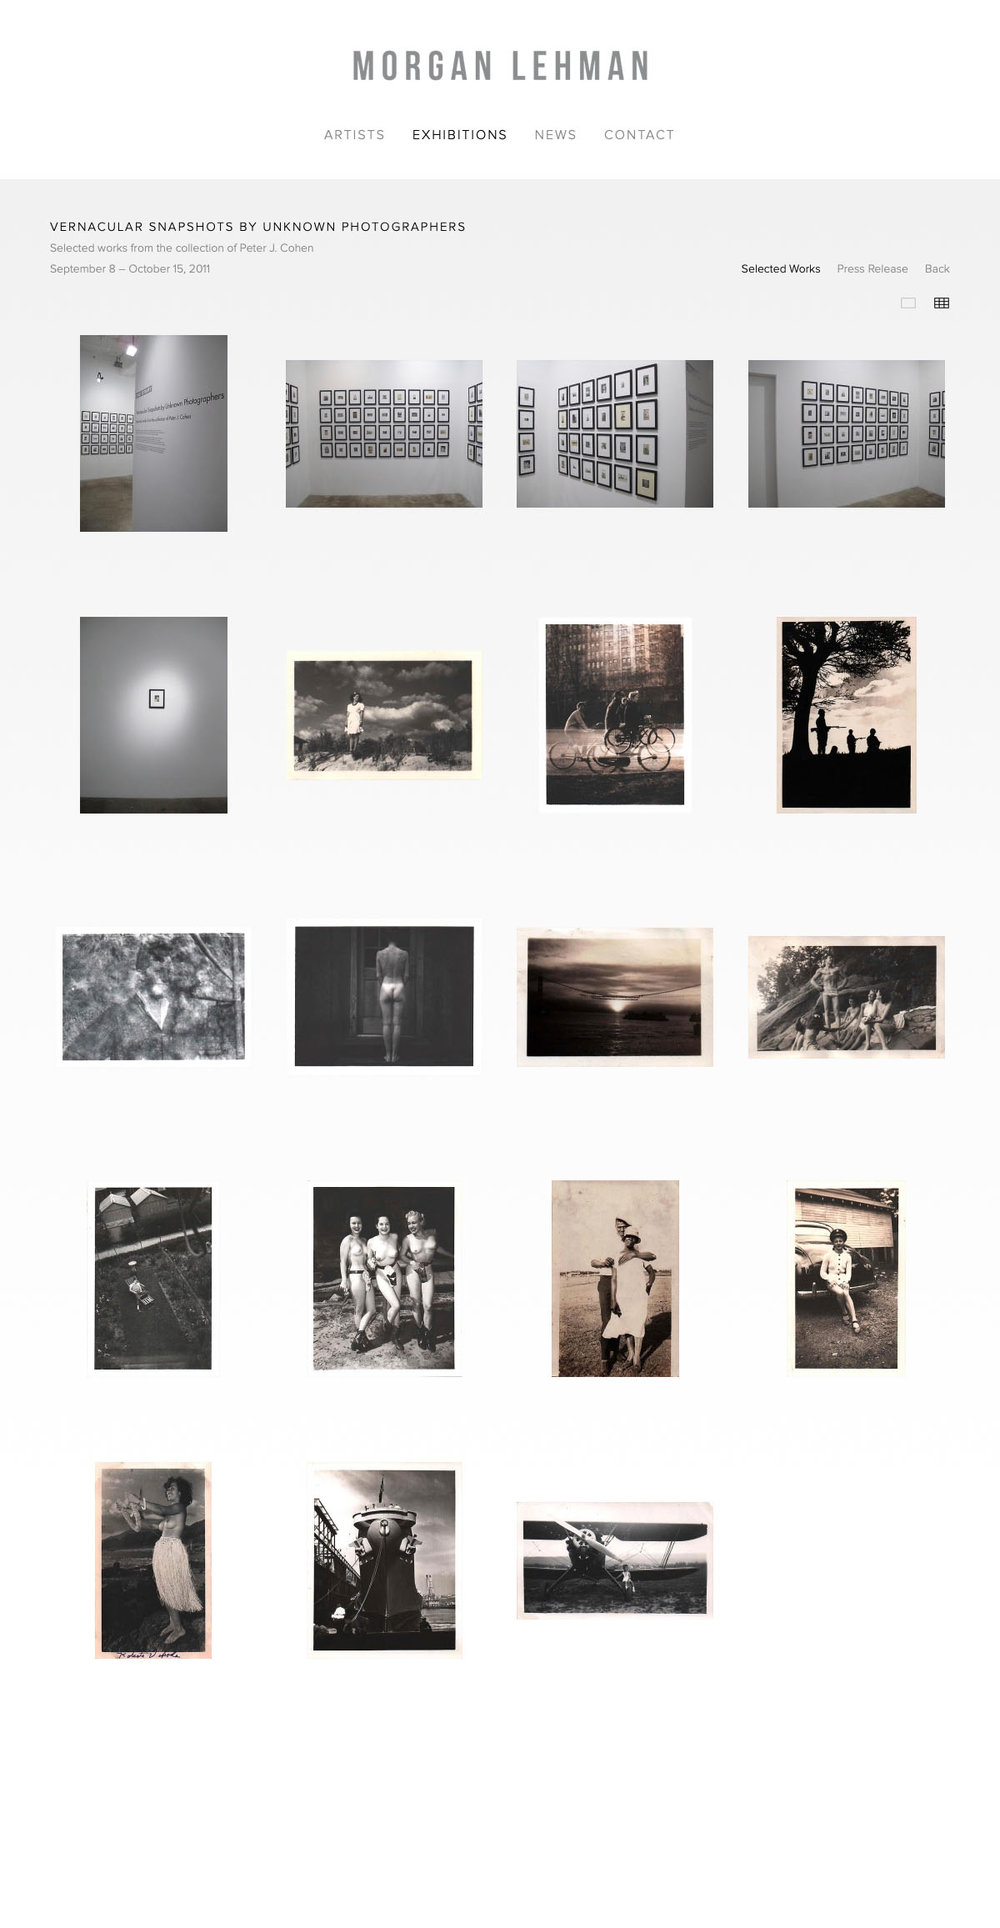 2011-09-08_Morgan Lehmann Gallery, Vernacular Snapshots by Unknown Photographers, 2011.jpg